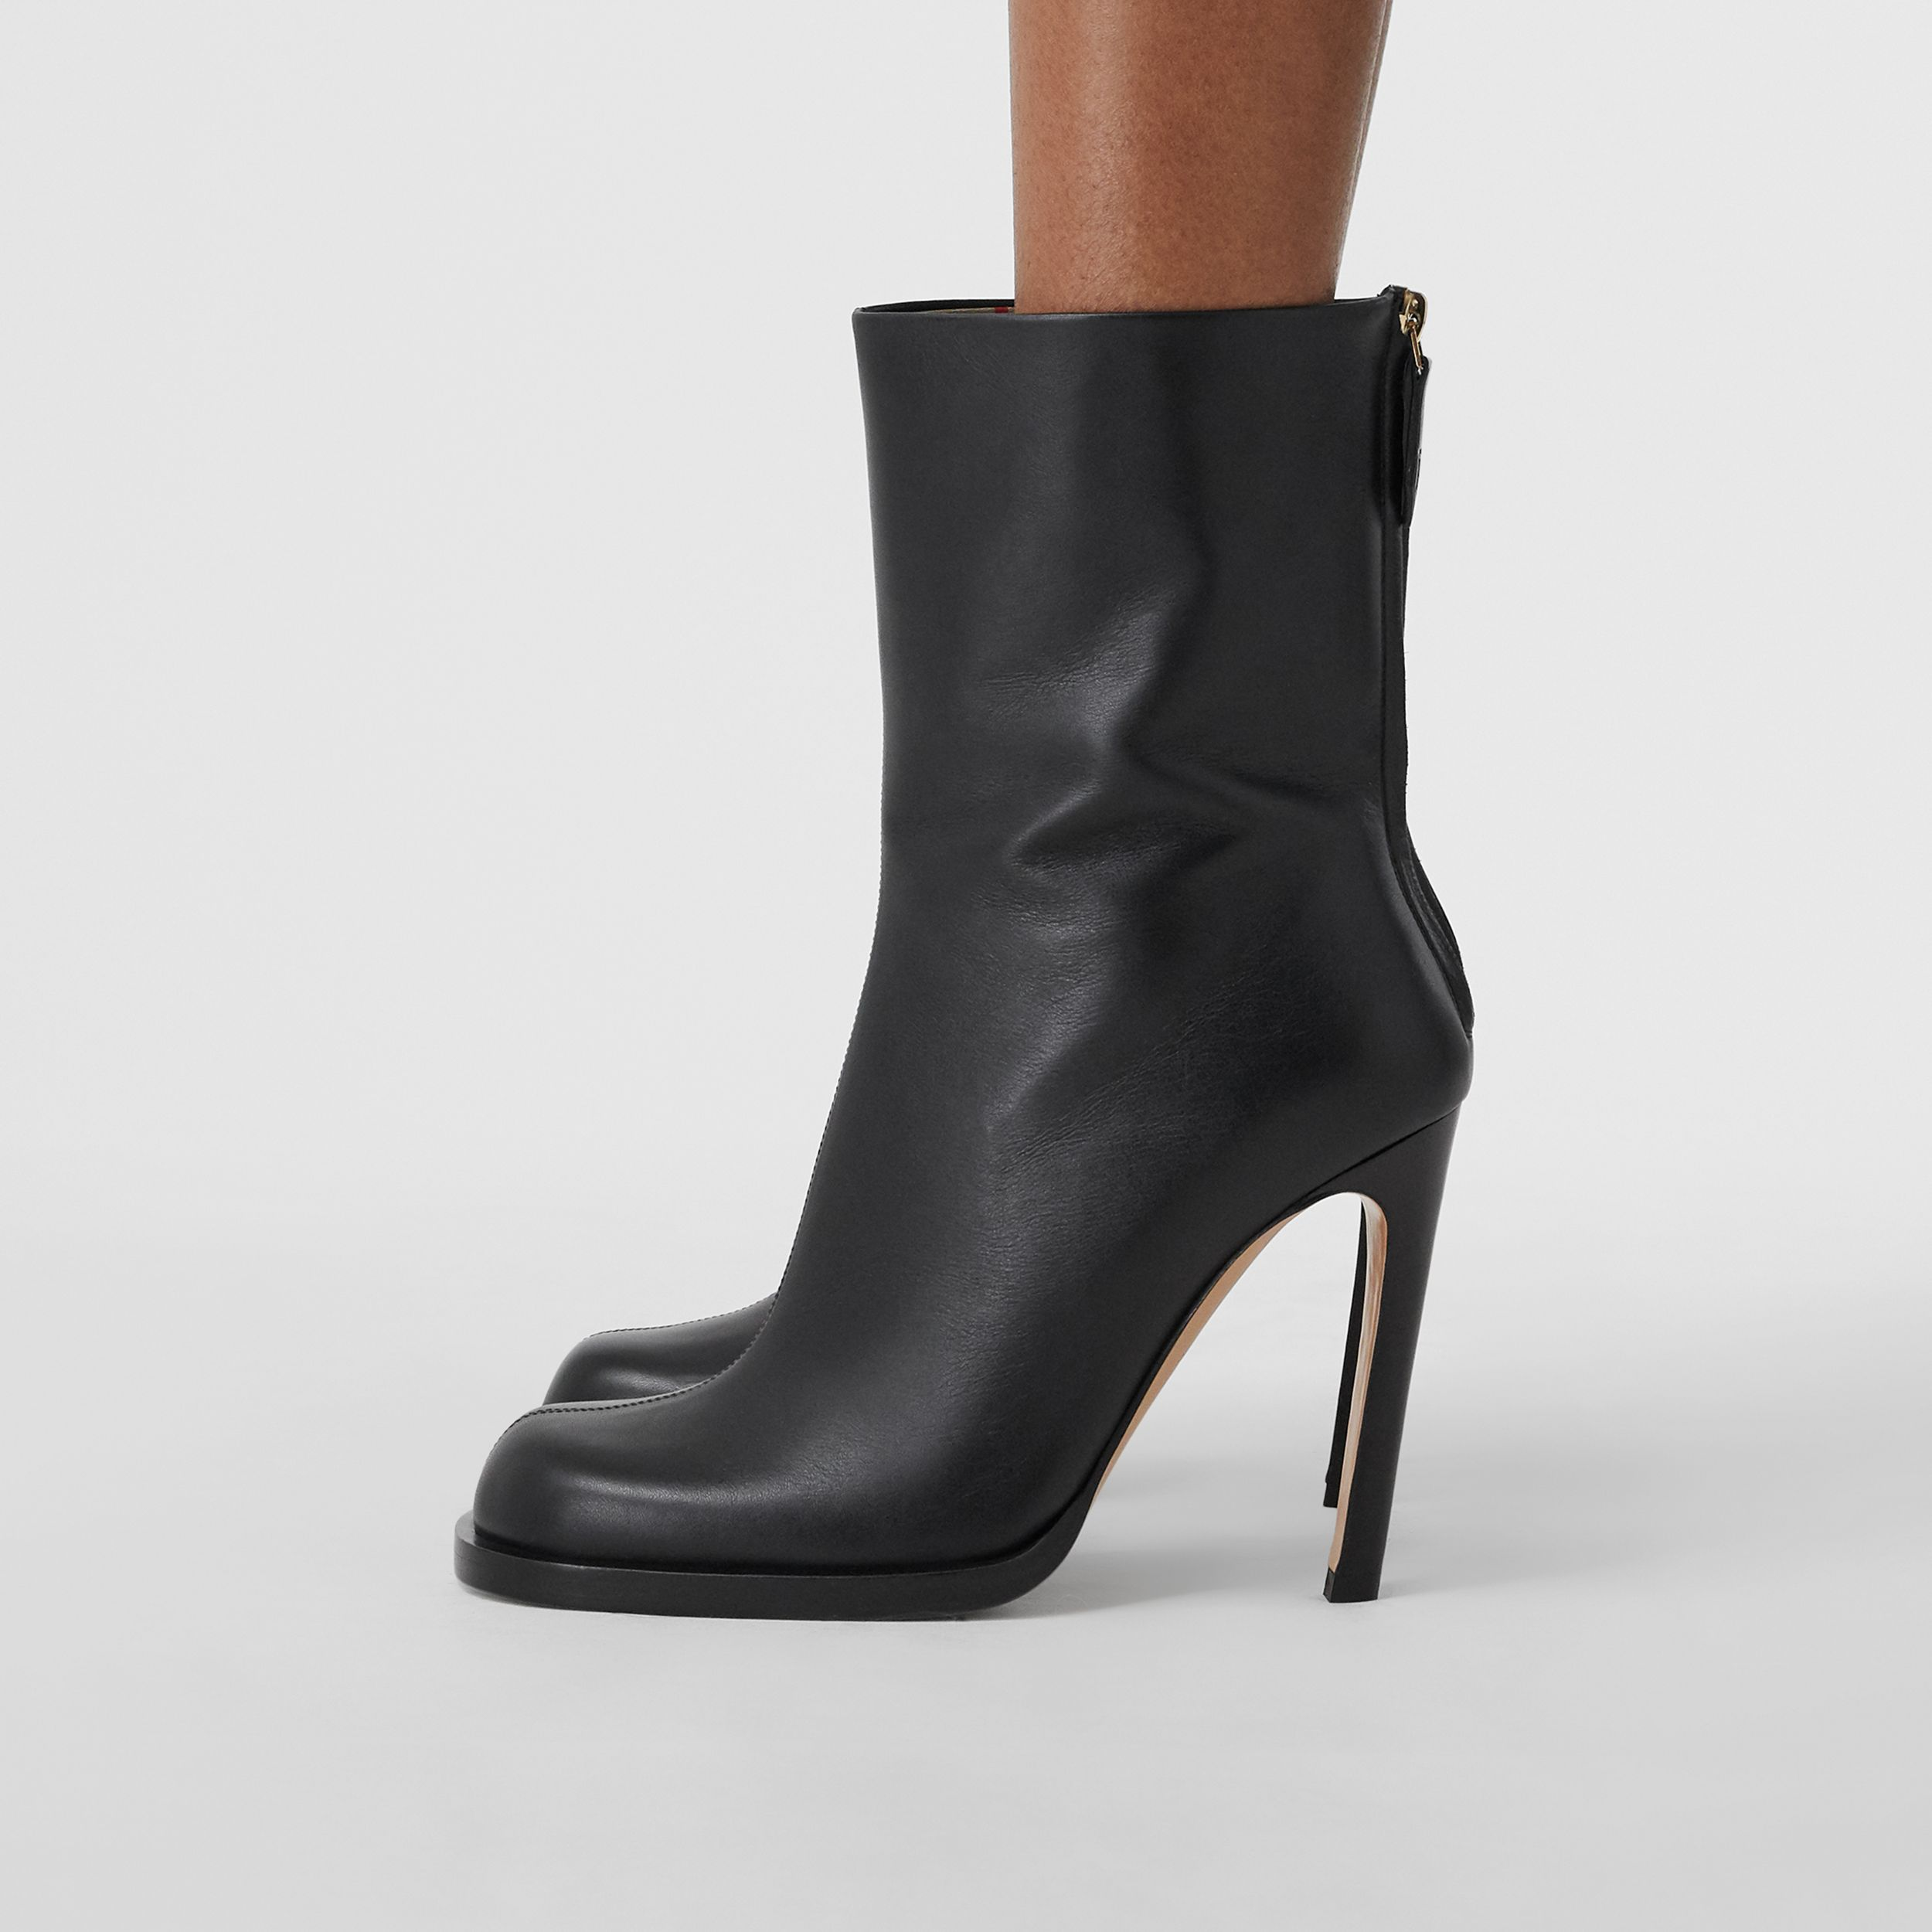 Vintage Check-lined Leather Ankle Boots in Black - Women | Burberry Canada - 3